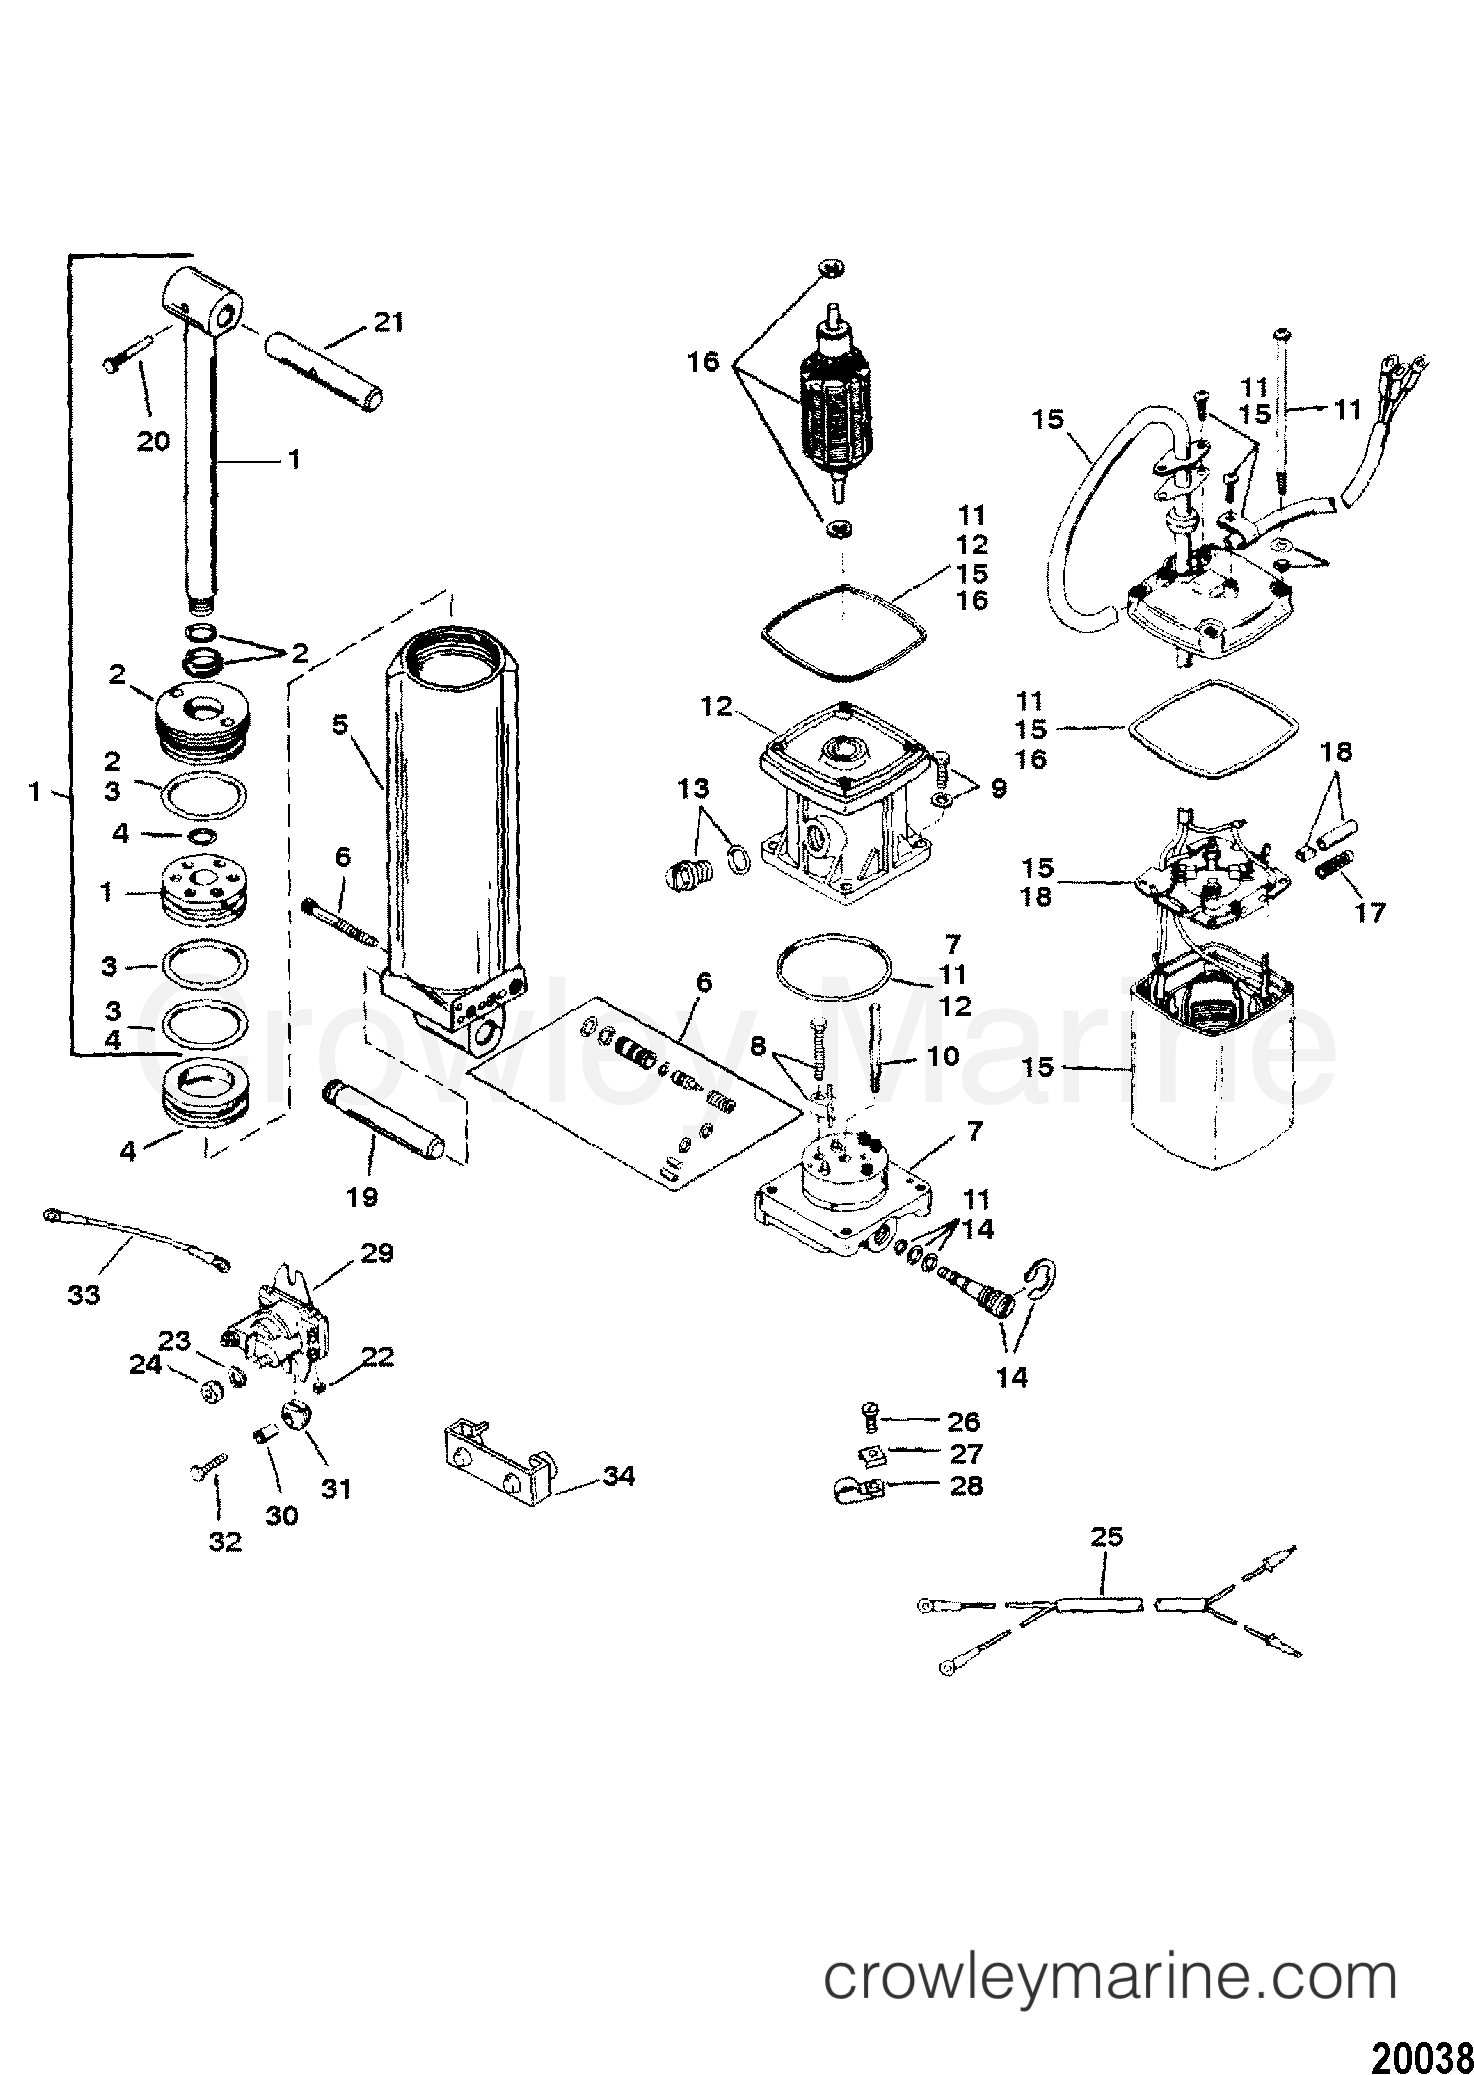 Power Trim Components Design I